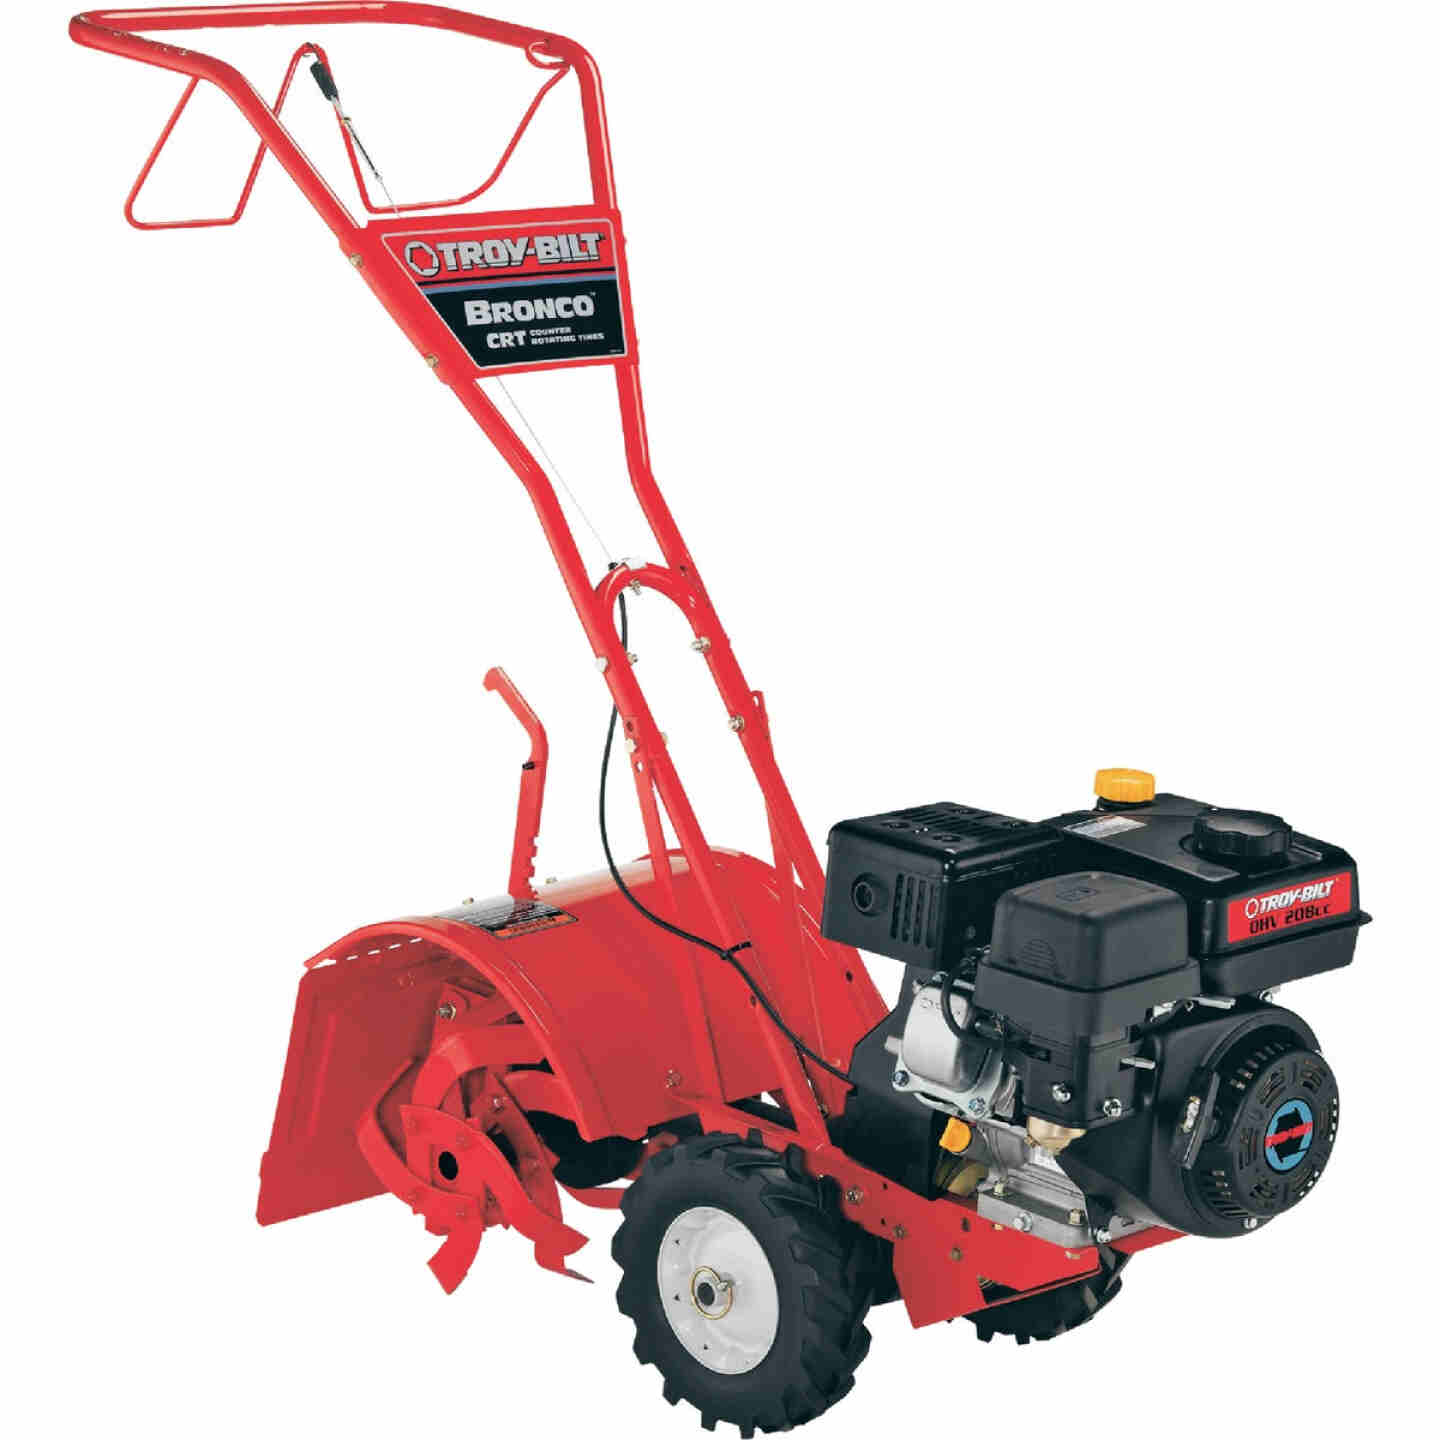 Troy-Bilt Bronco 14 In. 208cc Rear Tine Counter-Rotating Garden Tiller Image 1